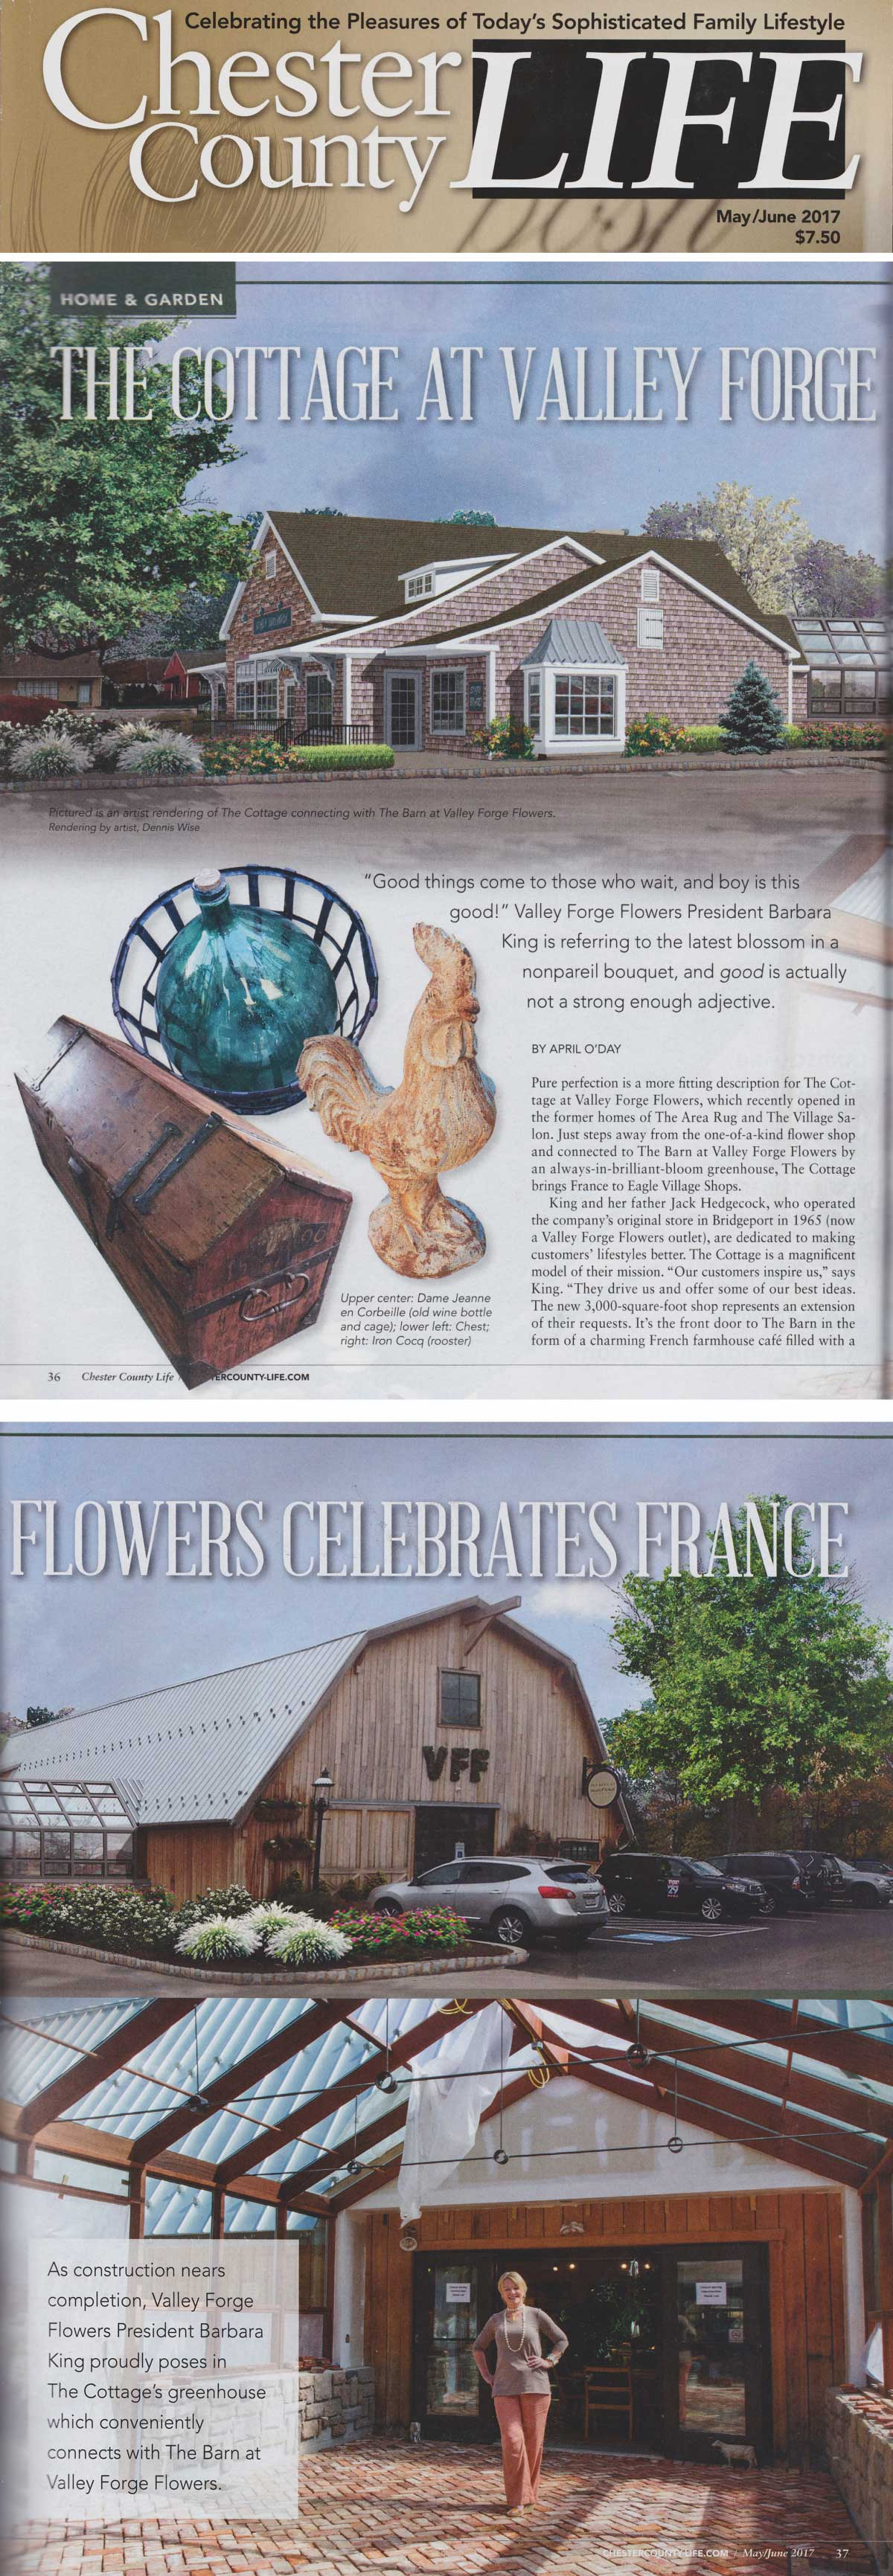 Valley Forge Flowers in Wayne, PA - Chester County Life 2017